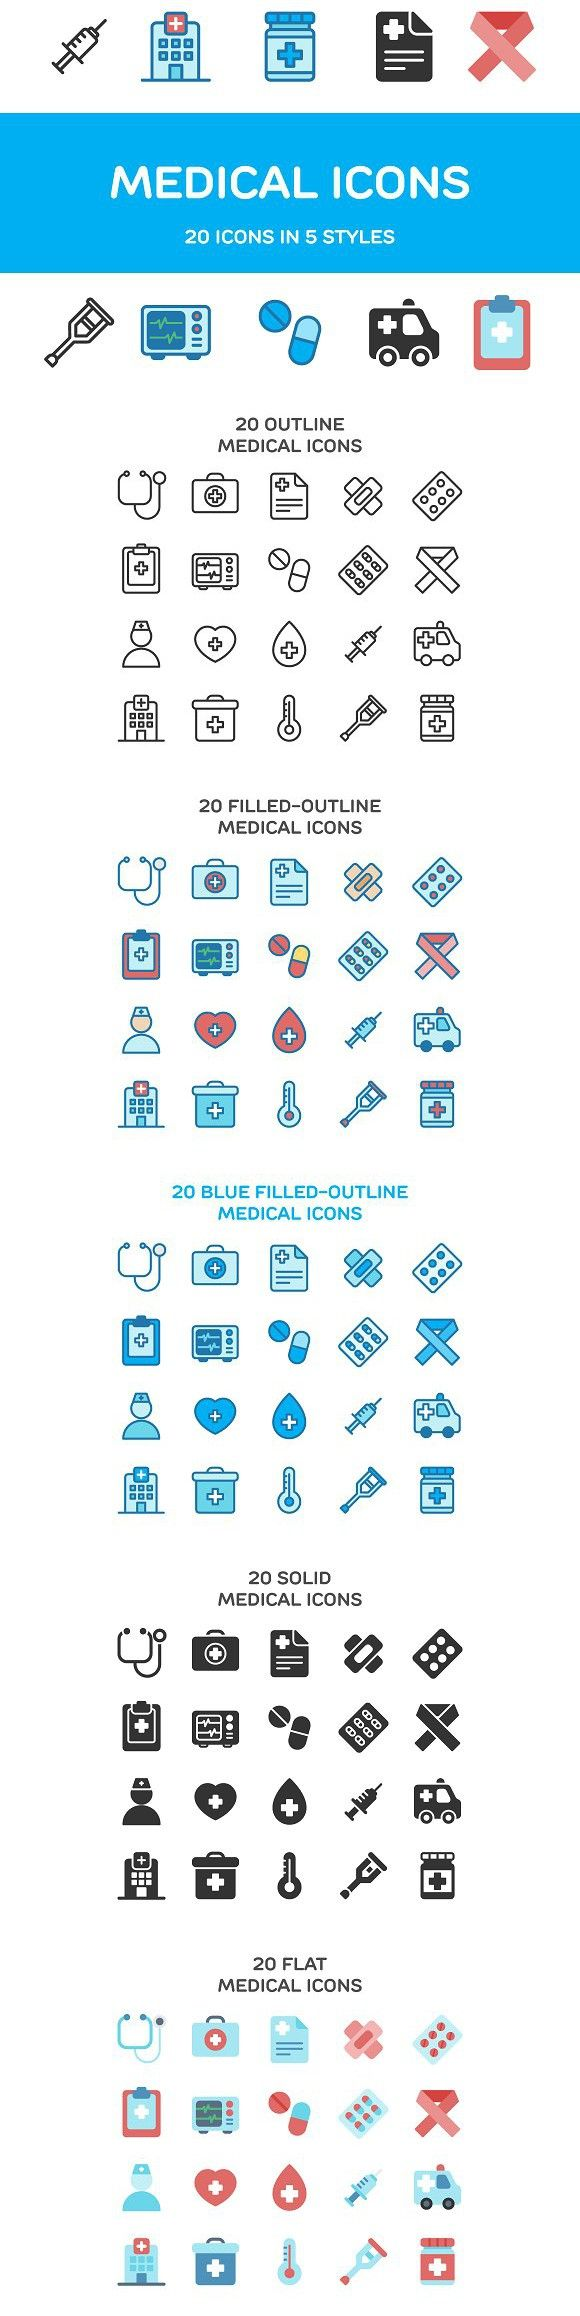 Medical Icons. Medical Infographic